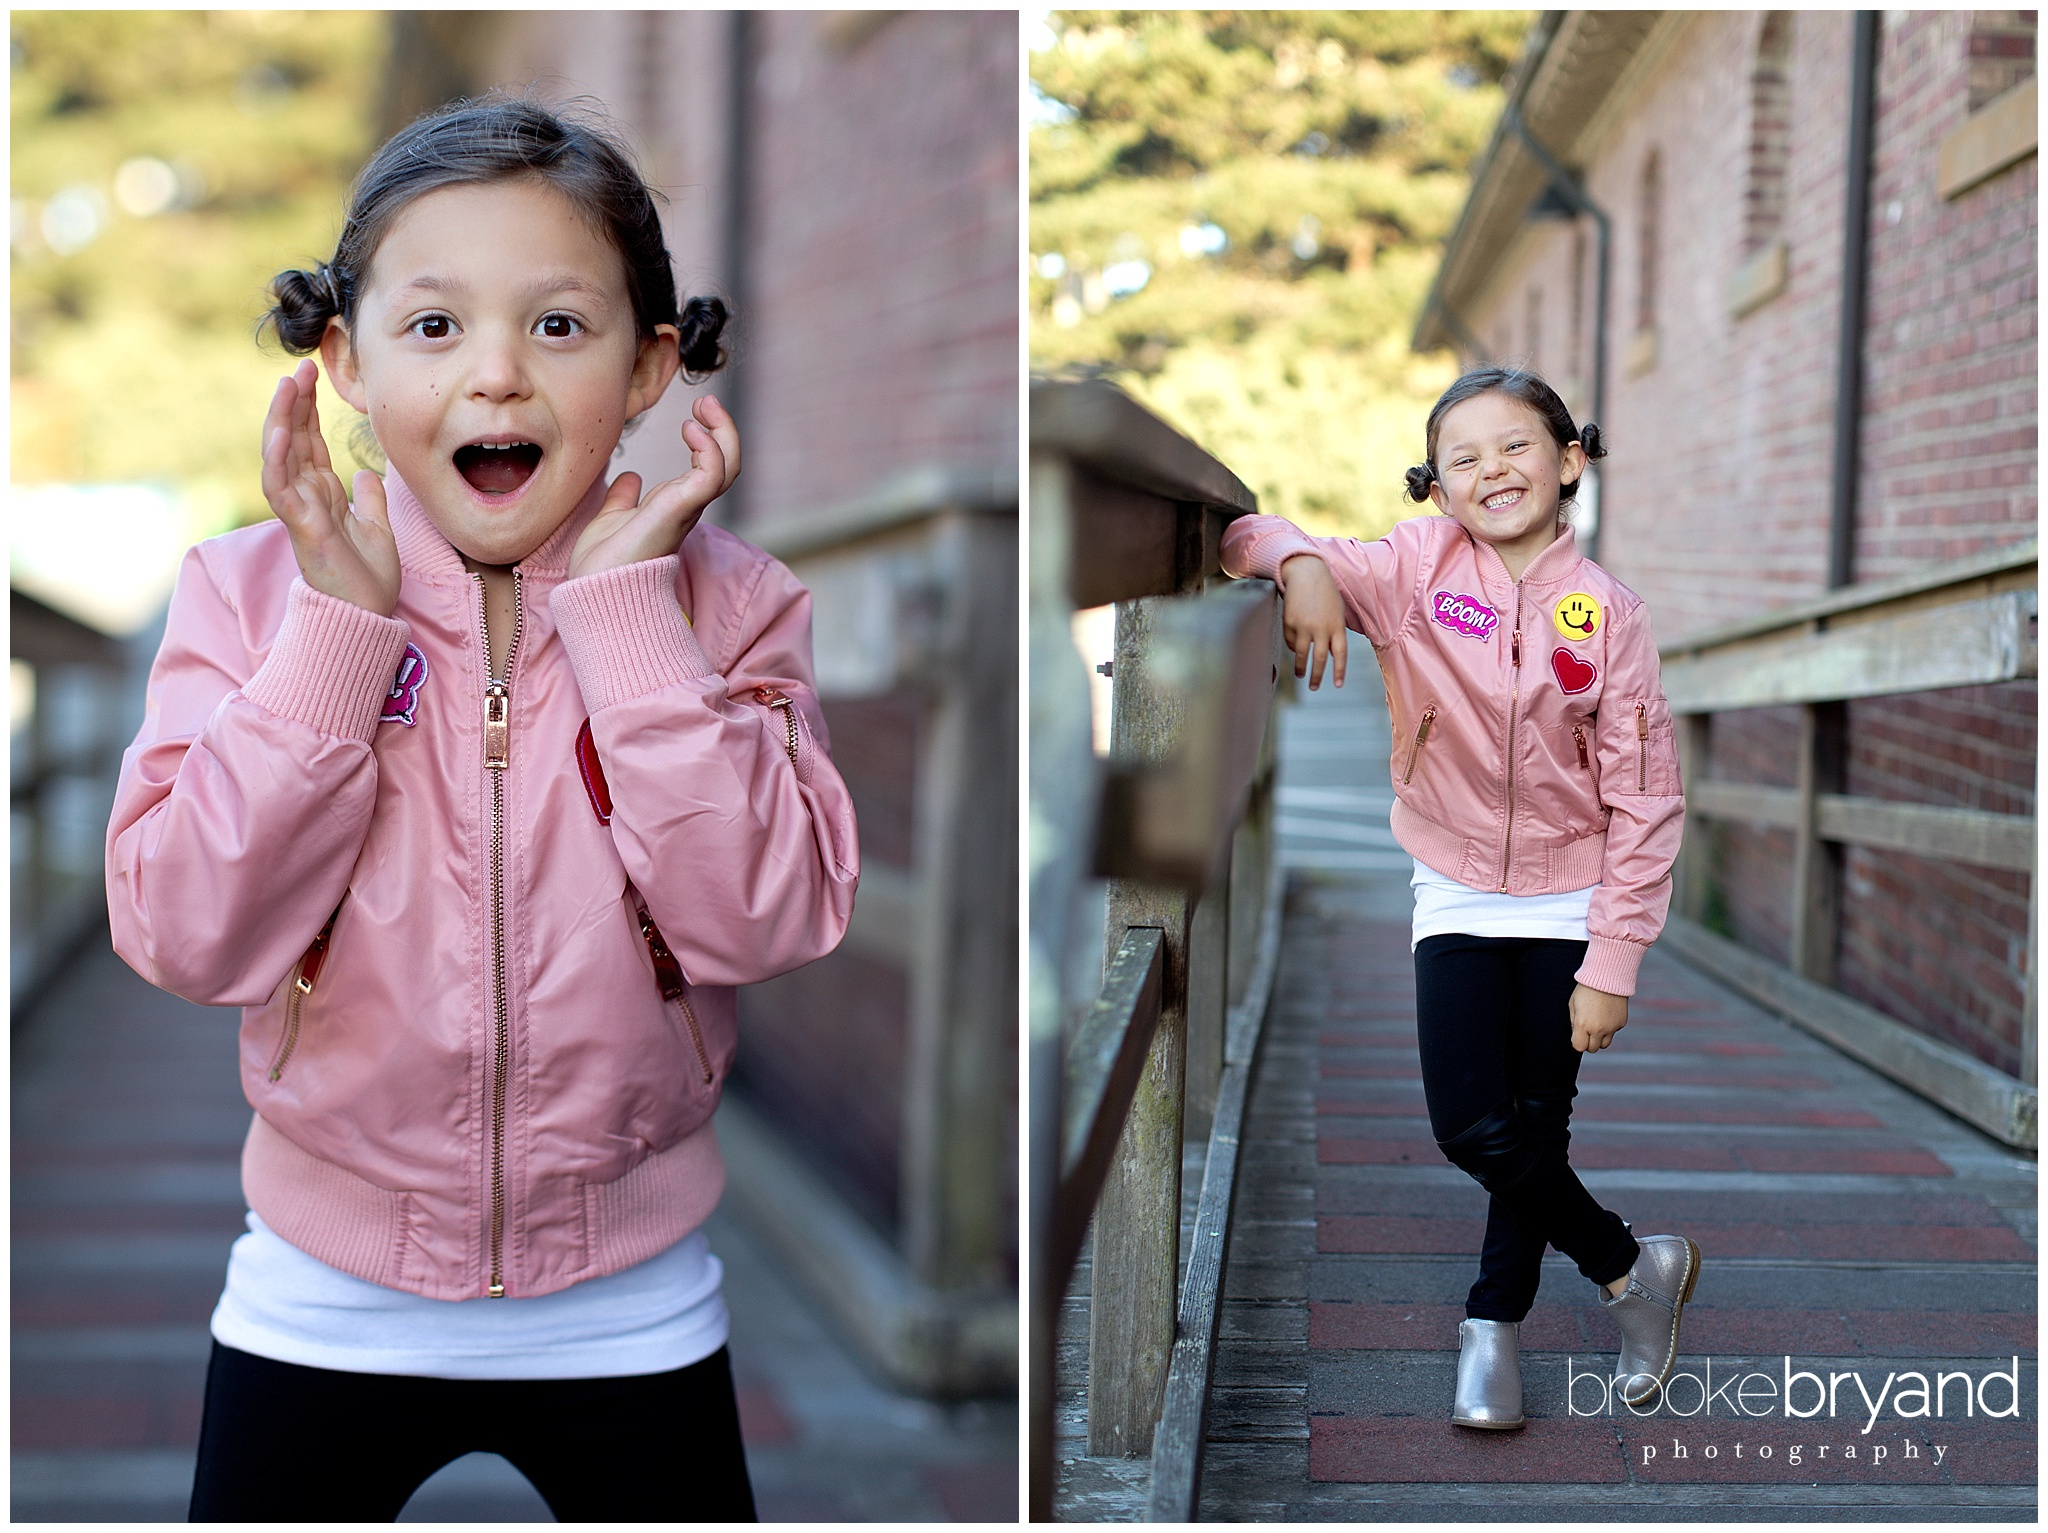 09.2017-zalewski-san francisco child model-brooke bryand photography-commercial lifestyle photographer-children lifestyle photographer-children agency model photographer-BBP_6869_stomp.jpg